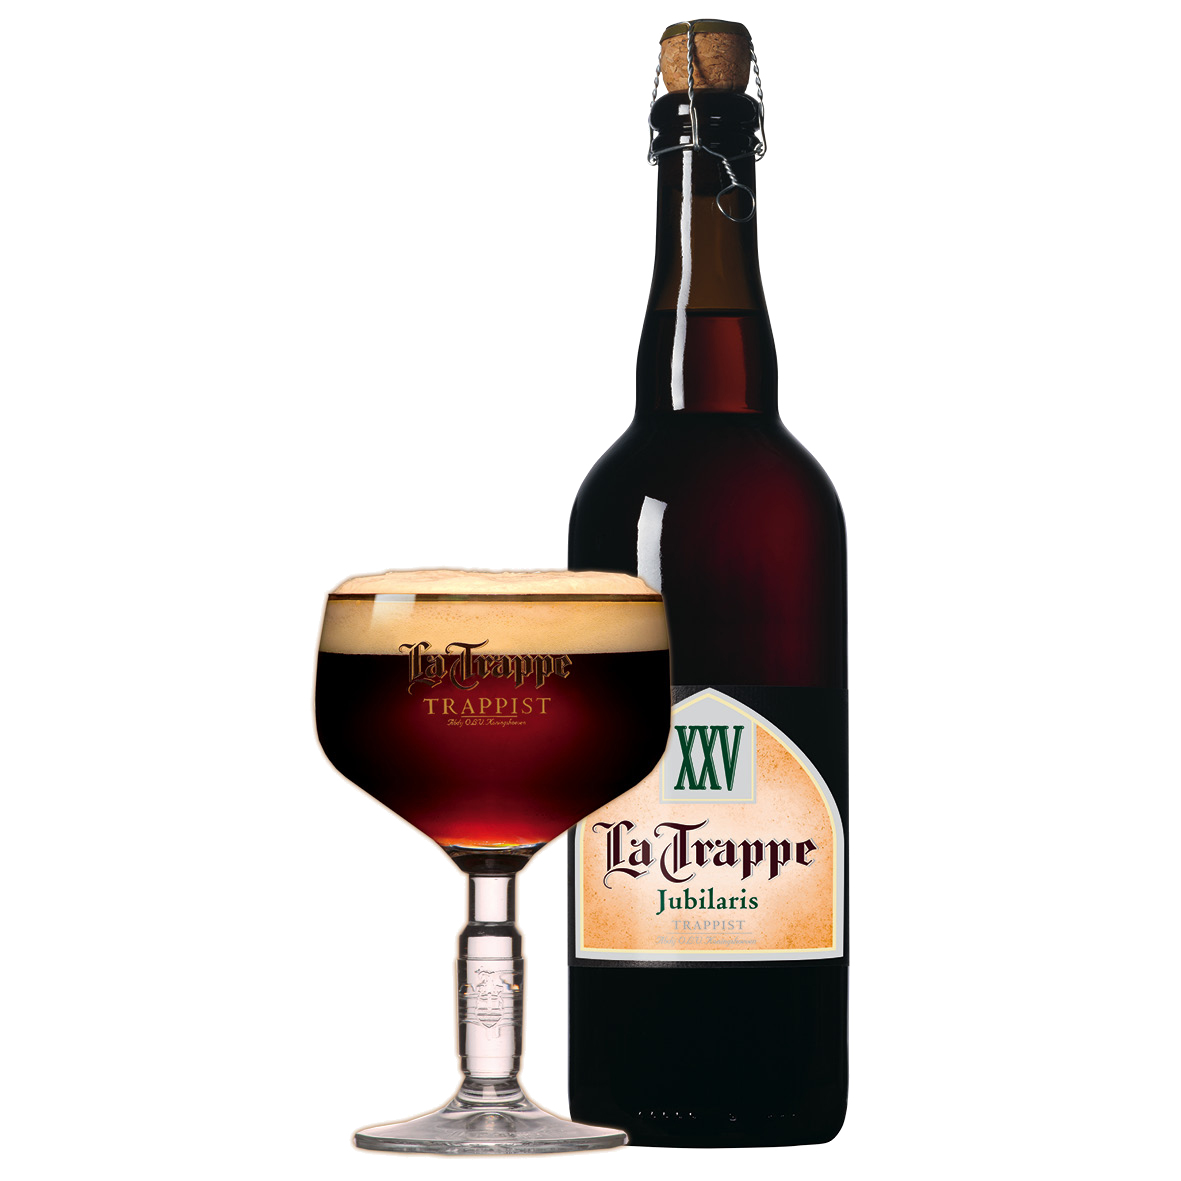 Bier review, bier, Geroen, Geroen Vansteenbrugge, La Trappe, La Trappe Jubilaris, review